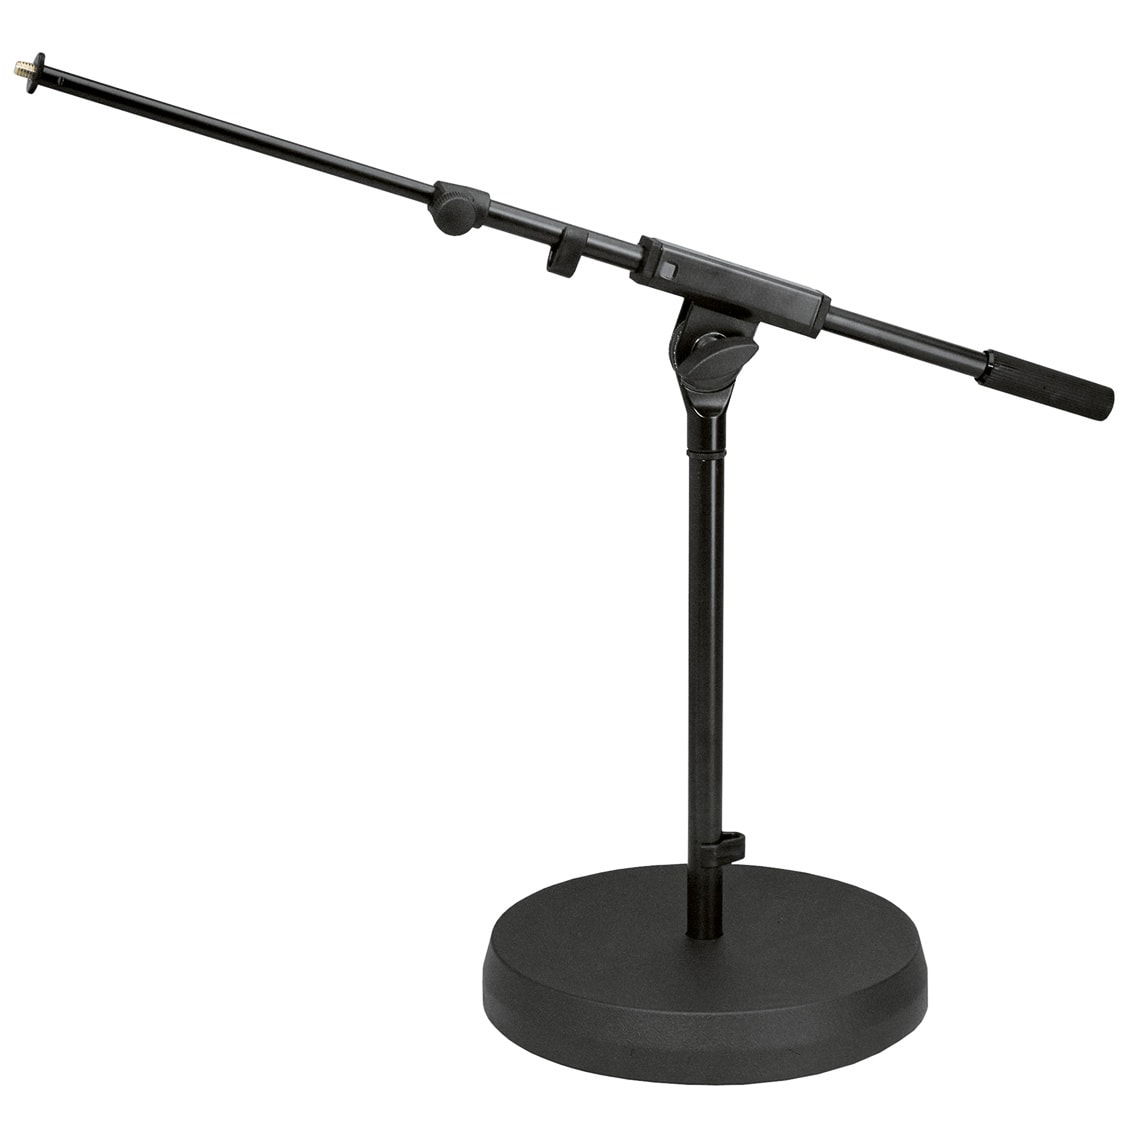 KM25960 - Microphone stand